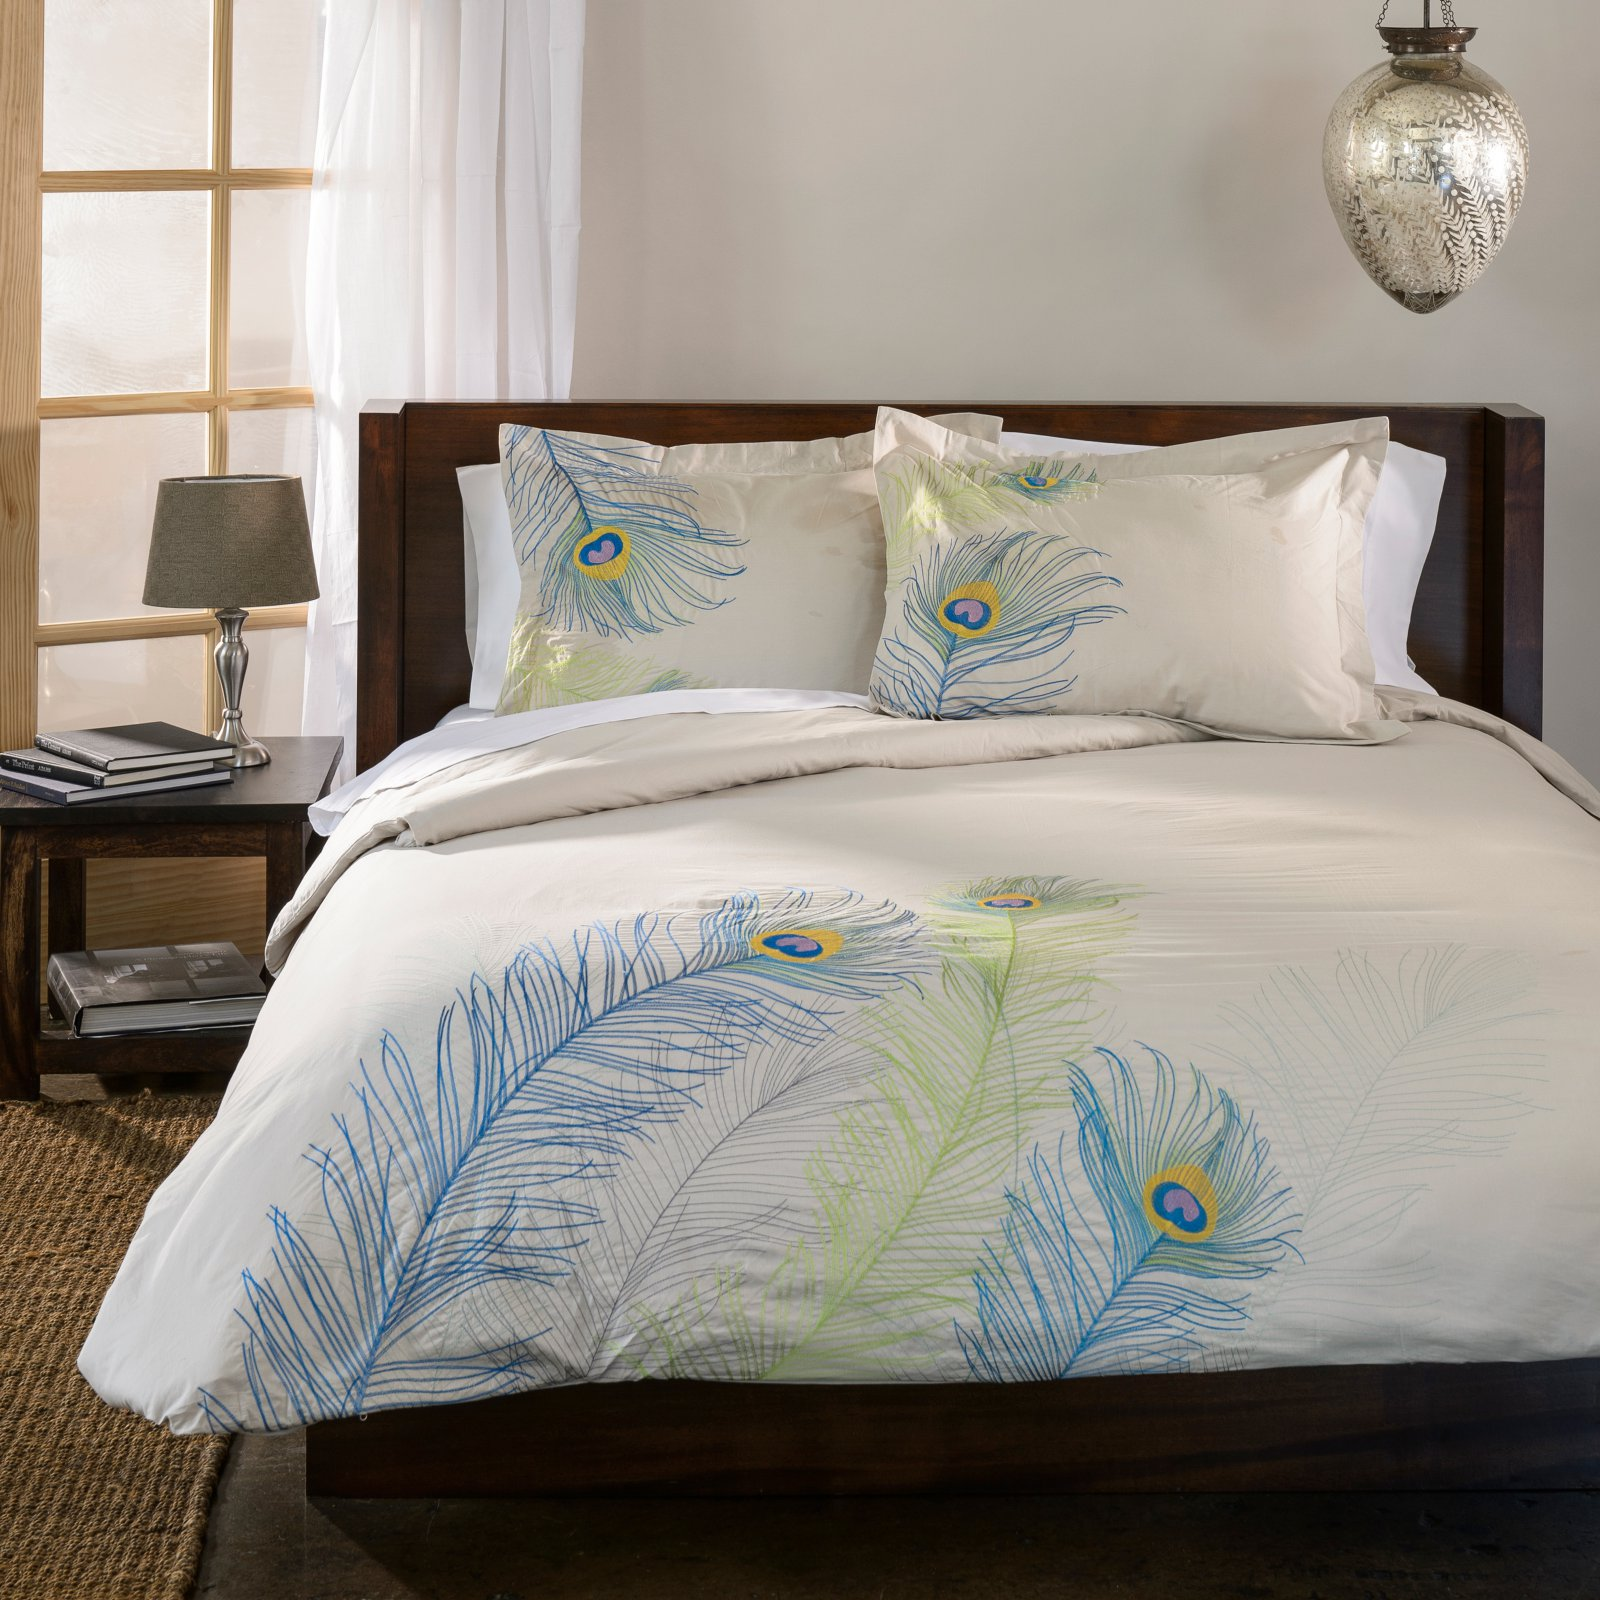 Superior Peacock Premium Cotton Embroidered 3-Piece Duvet Cover Set